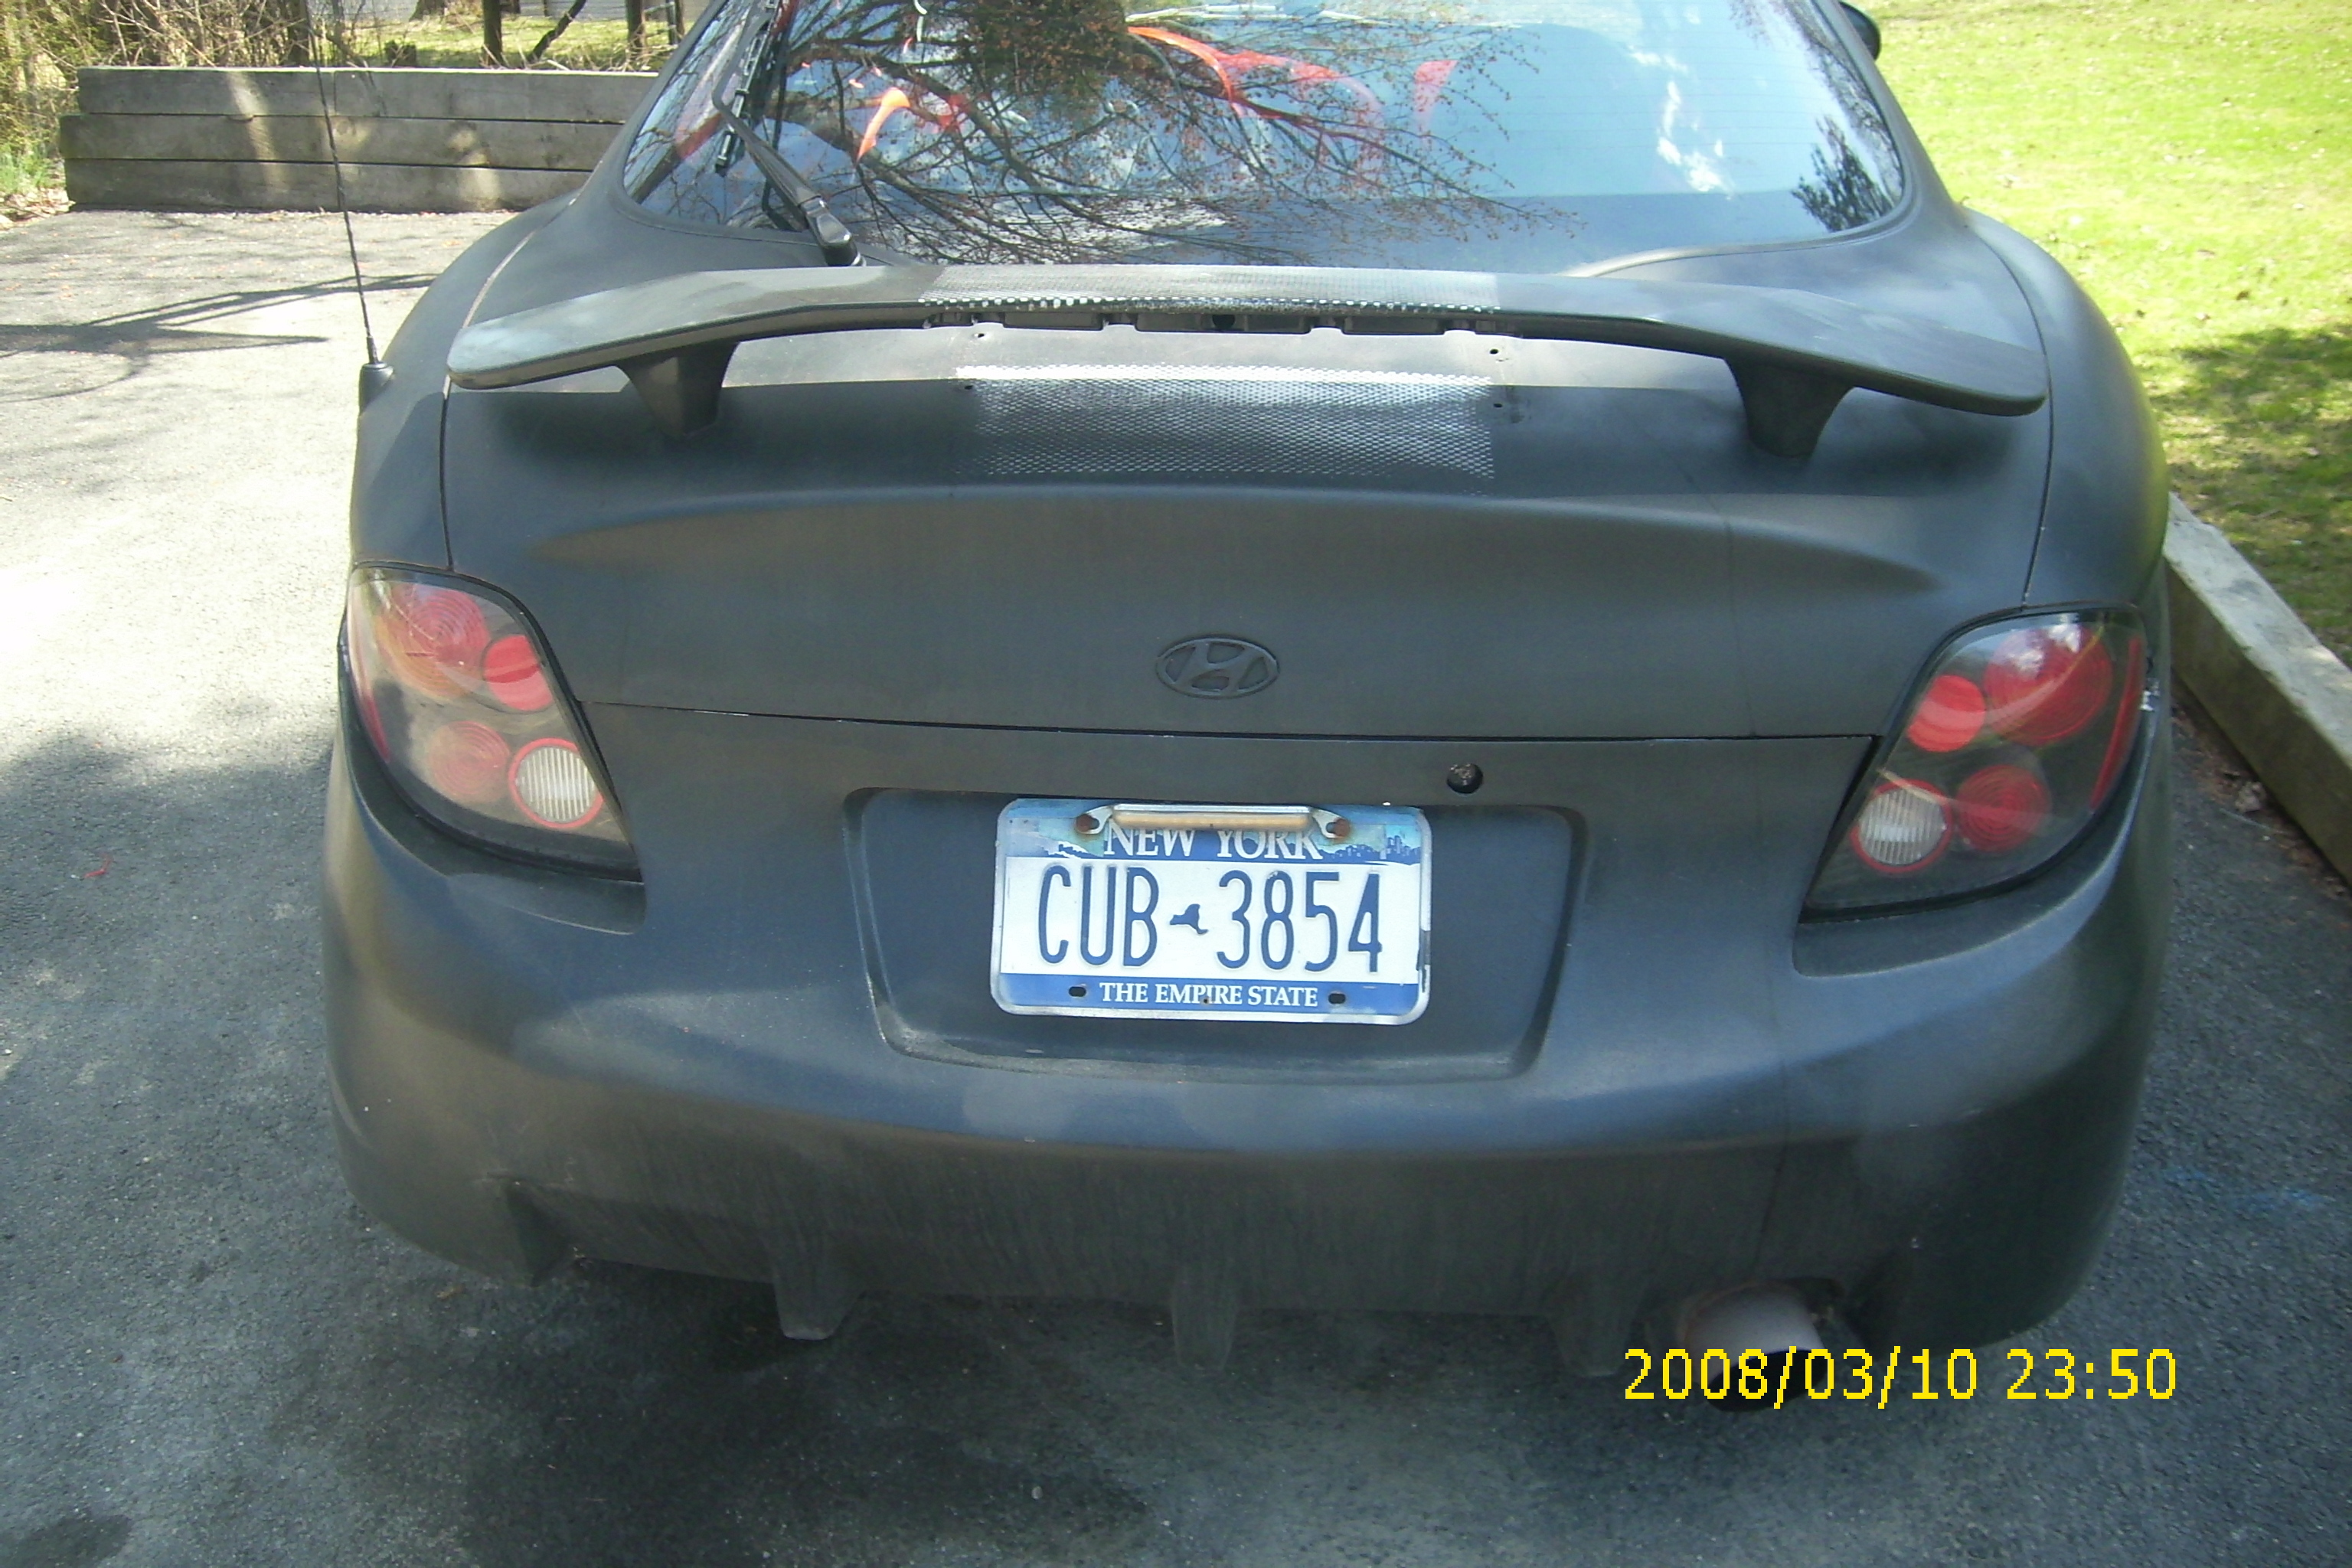 hyundaibrian01 s Profile in middletown NY CarDomain